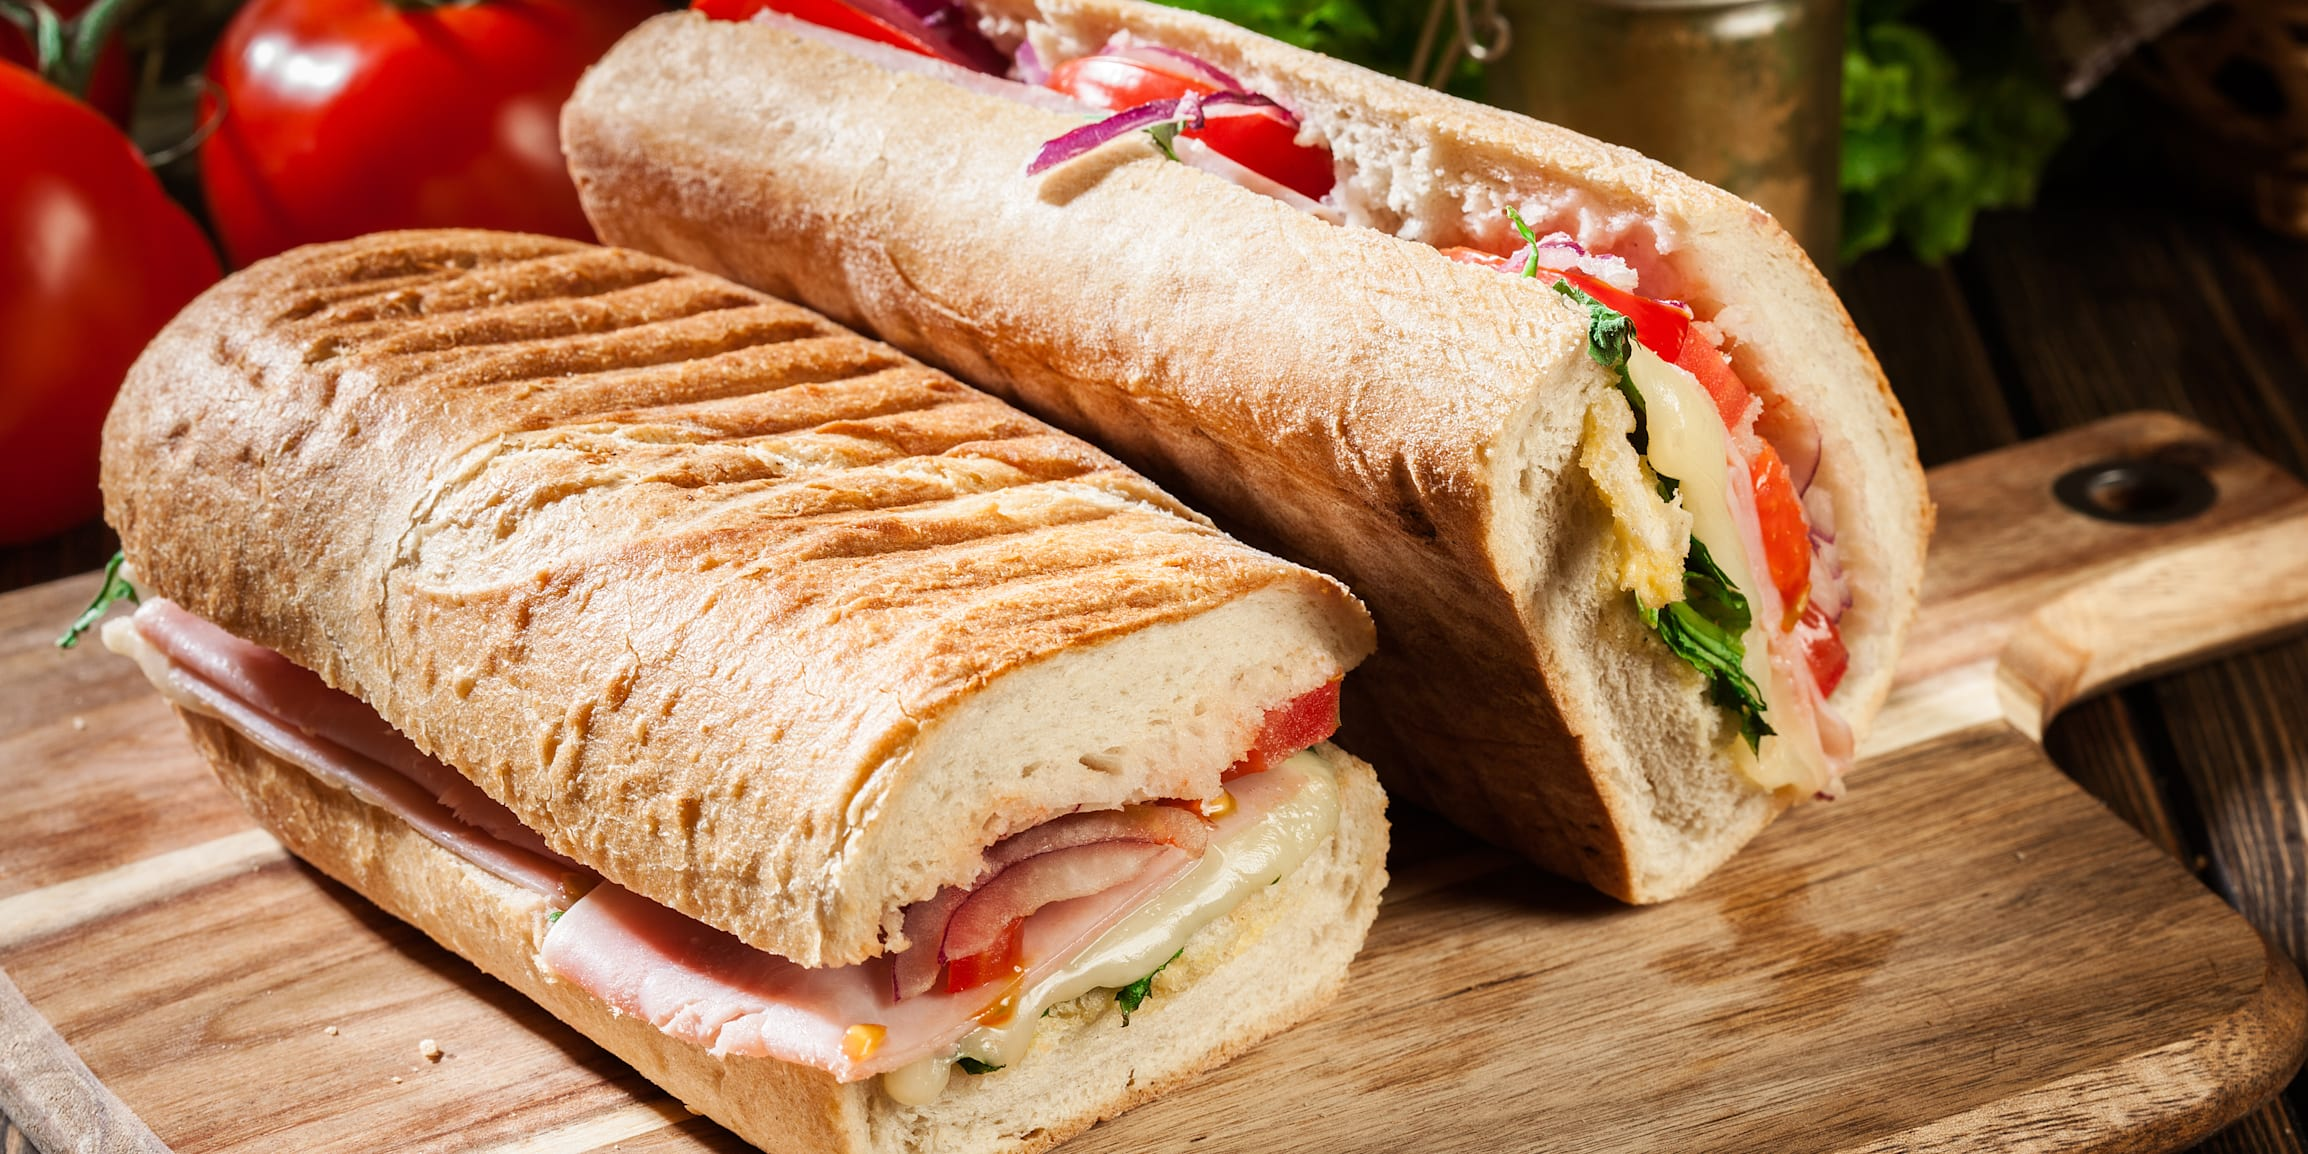 panini, sandwich, ham, cheese, italian, bread, food, arugula, lunch, tomato, meal, snack, brunch, lettuce, ciabatta, bun, baguette, michetta, breakfast, background, healthy, grilled, delicious, tasty, dinner, salad, roll, toasted, nobody, hot, cuisine, sub, submarine, deli, side view